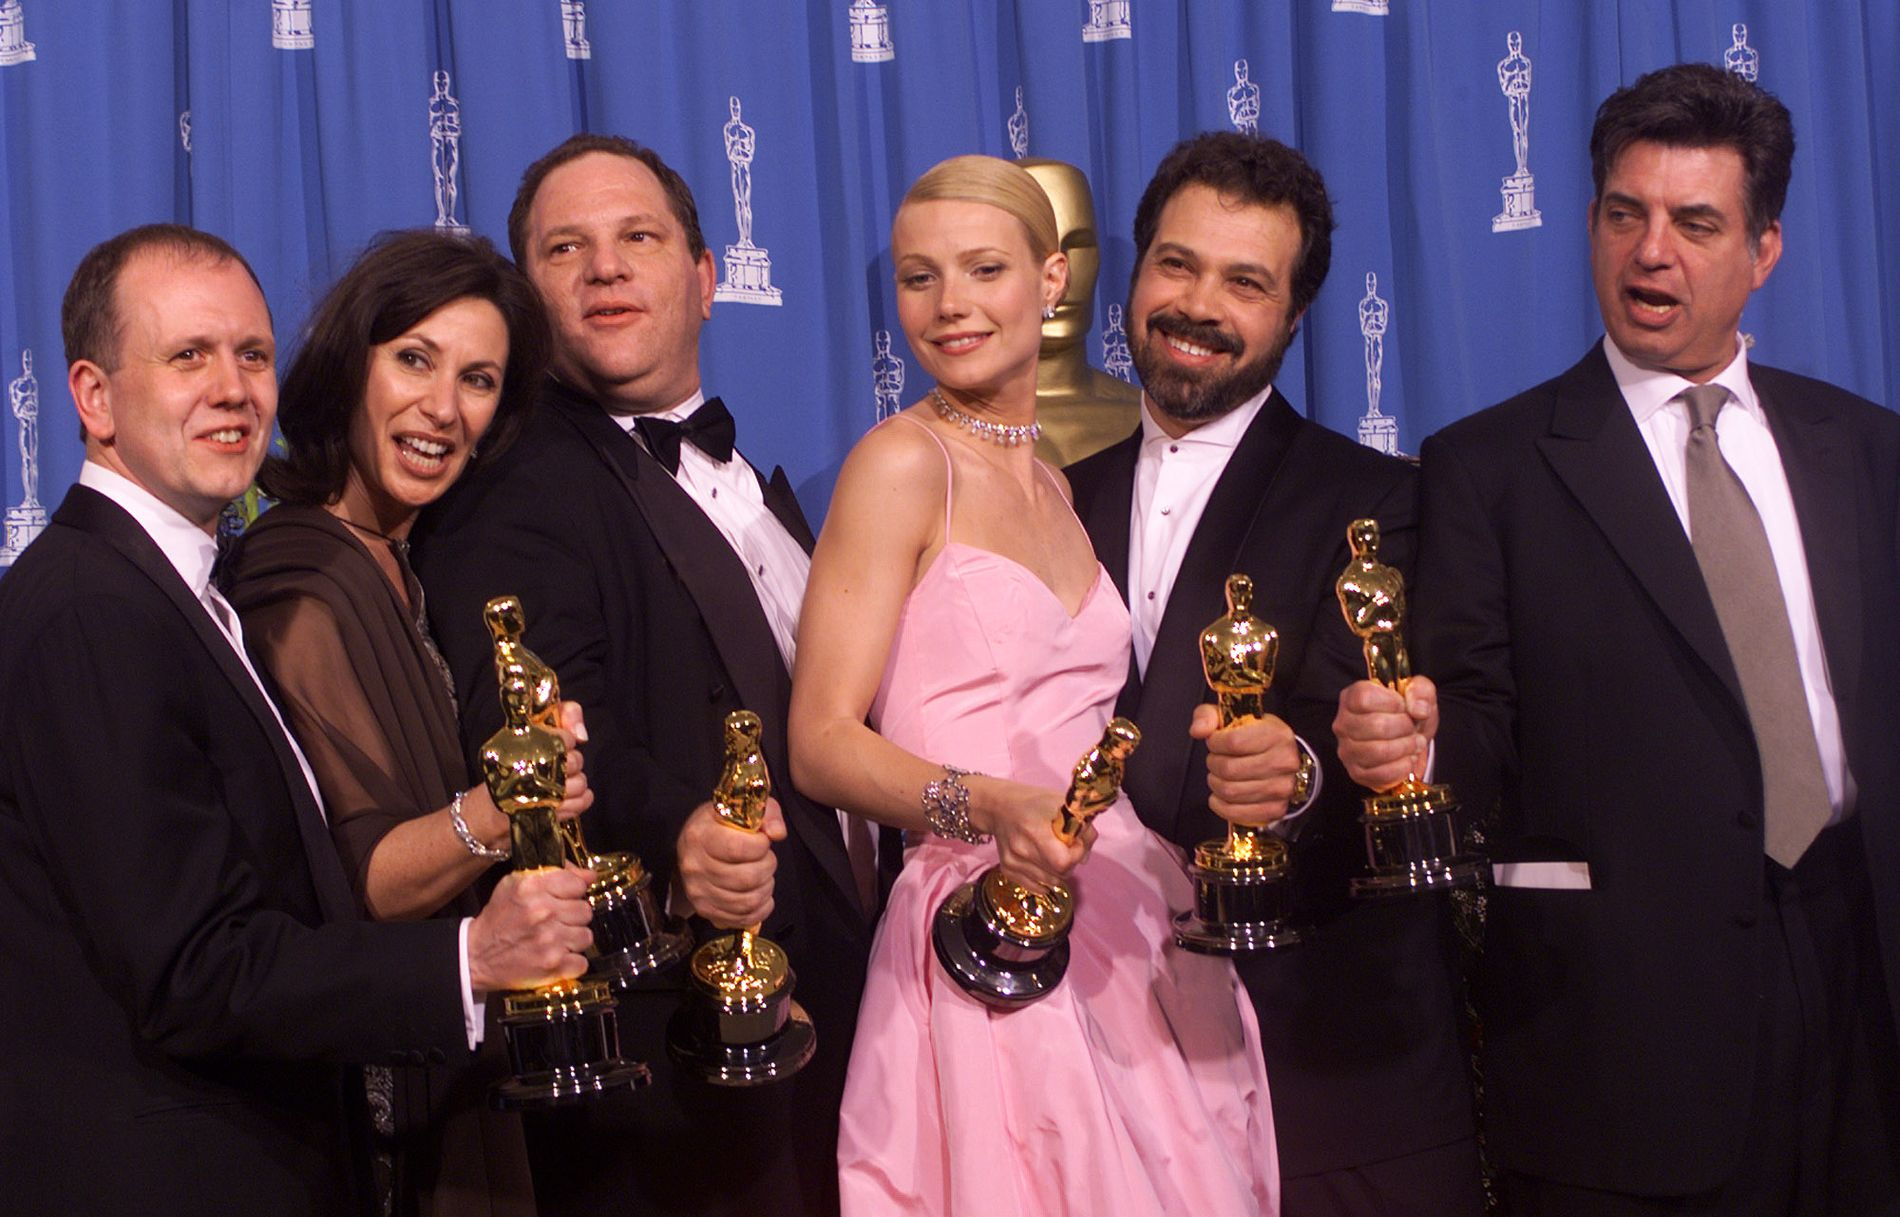 SIDE OM SIDE: Havey Weinstein står til venstre for Gwyneth Paltrow på dette bildet fra Oscarutdelingen i 1999. Filmen «Shakespeare In Love» vant for beste film. Fra venstre mot høyre ser vi David Parfitt, Donna Gigliotti, Harvey Weinstein, Gwyneth Paltrow, Edward Zwick og Marc Norman.